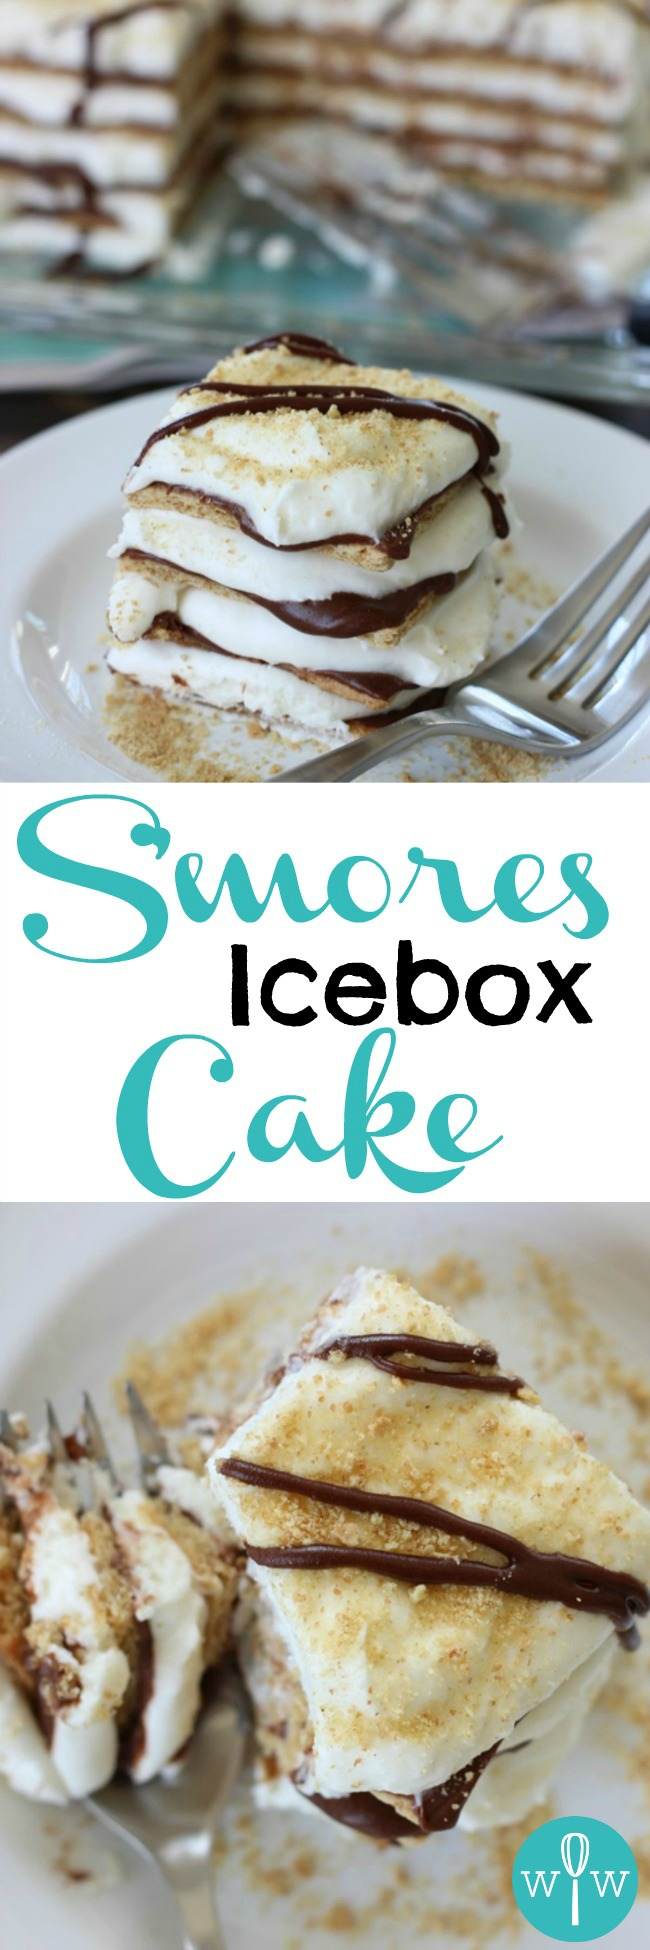 S'mores Icebox Cake - A simple, yet decadent dessert with luscious layers of graham crackers, creamy milk chocolate, and fluffy marshmallow whipped cream. This recipe is impressive but SO easy! | www.worthwhisking.com